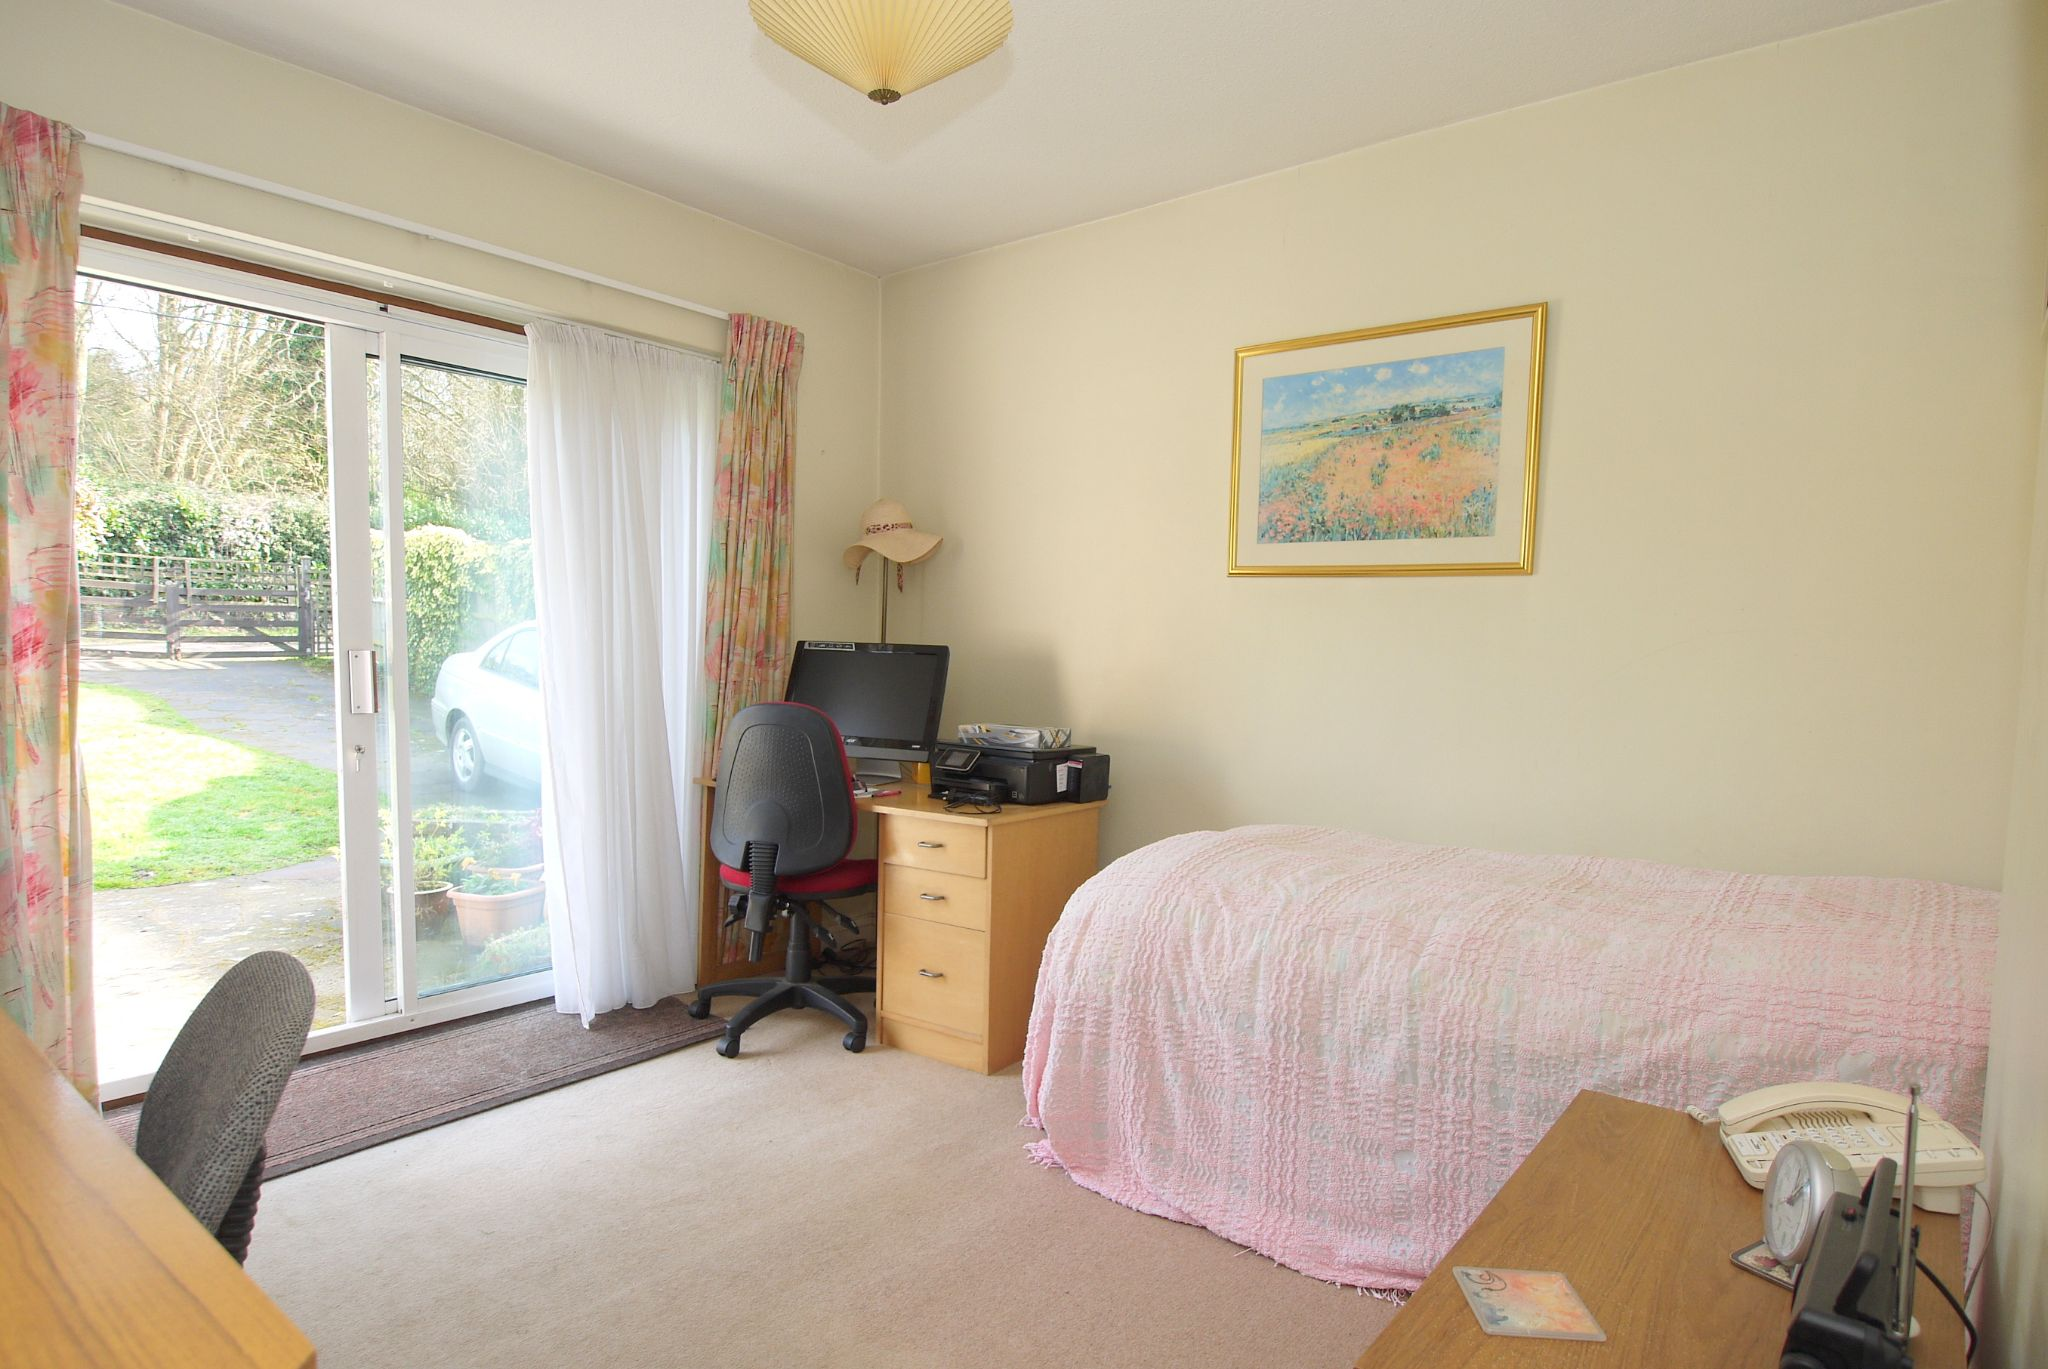 3 bedroom detached bungalow Sale Agreed in Sevenoaks - Photograph 7